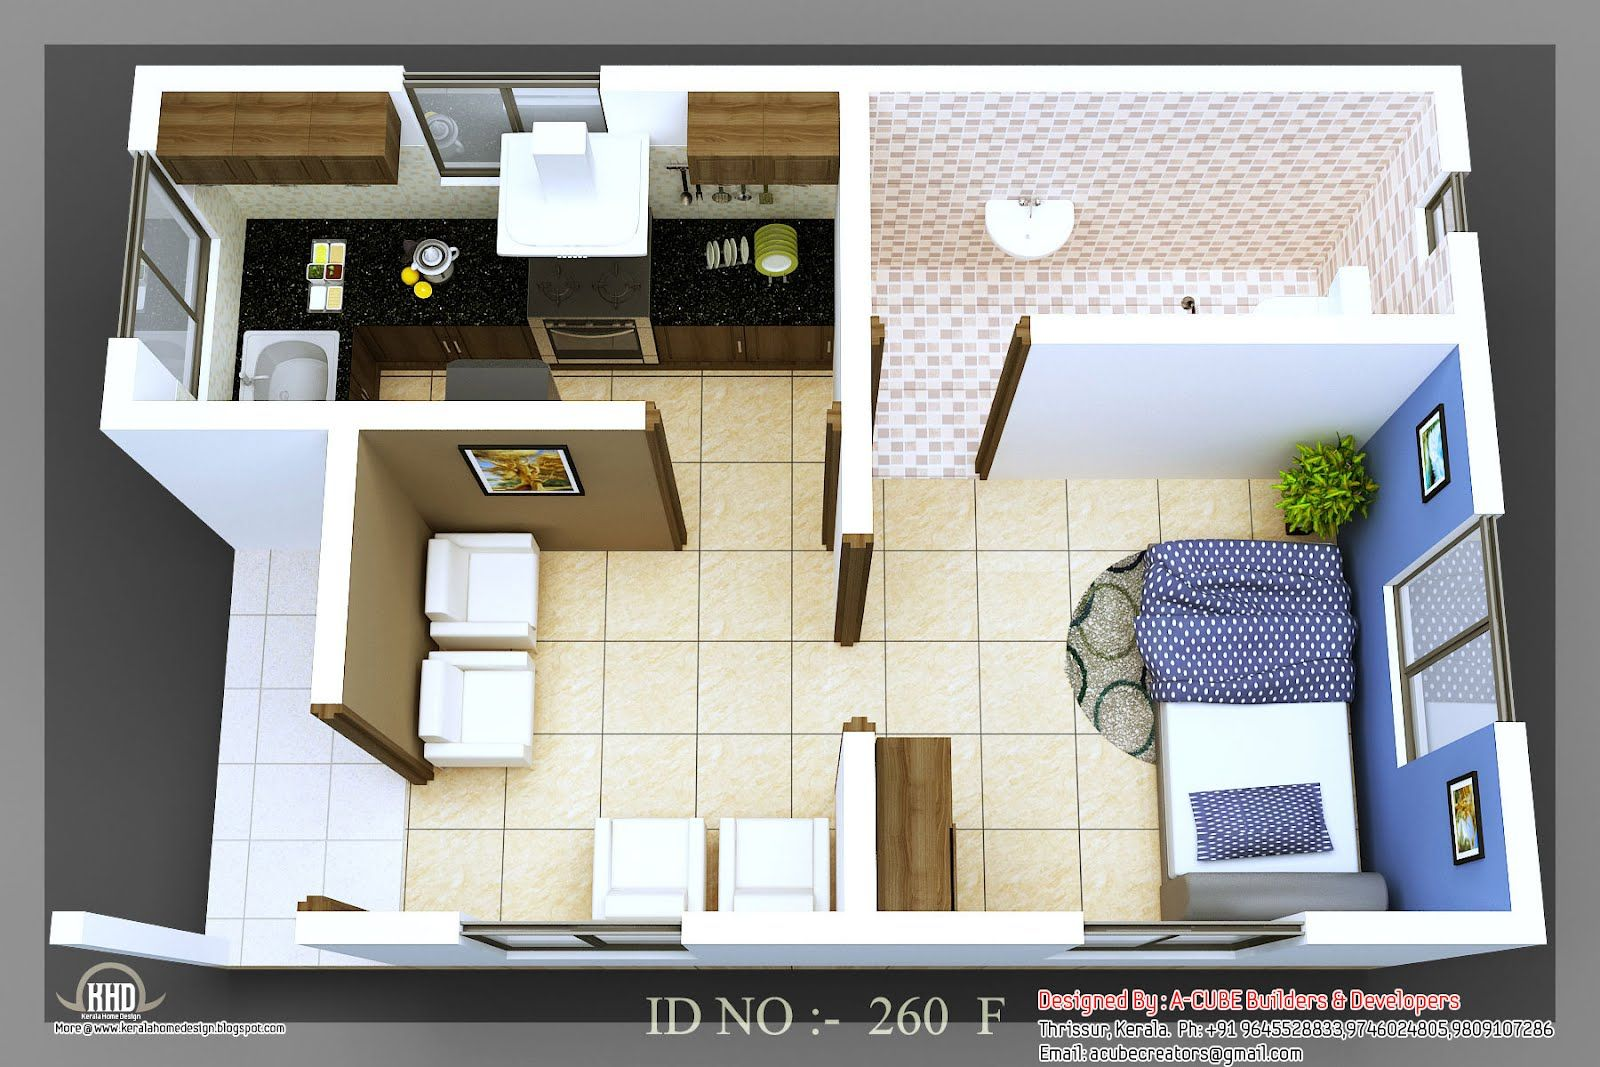 Enjoyable 17 Best Images About Small House Plan On Pinterest Small House Largest Home Design Picture Inspirations Pitcheantrous